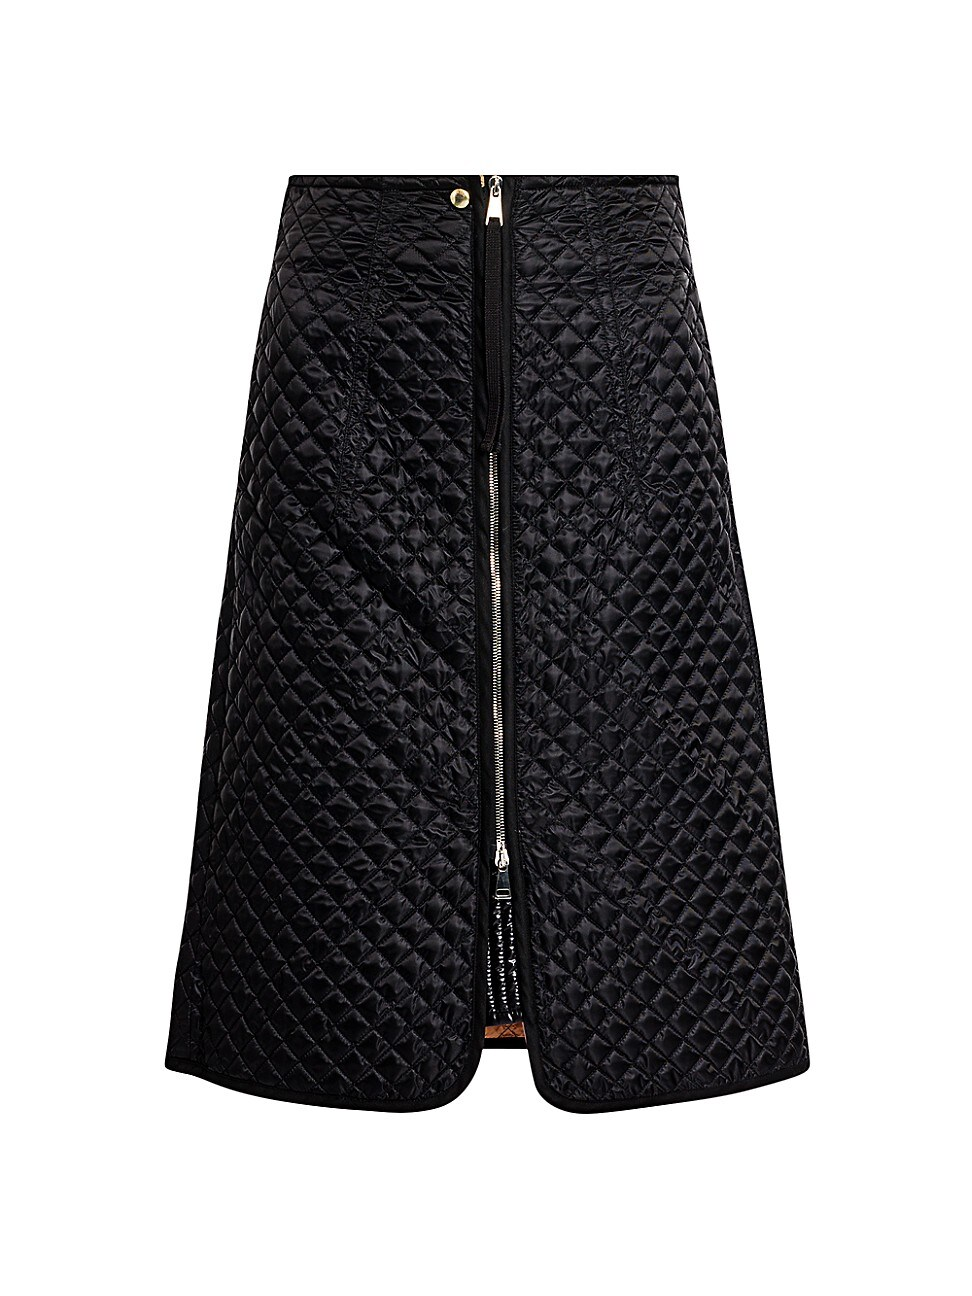 Moncler Genius WOMEN'S 2 MONCLER 1952 DIAMOND QUILTED NYLON SKIRT